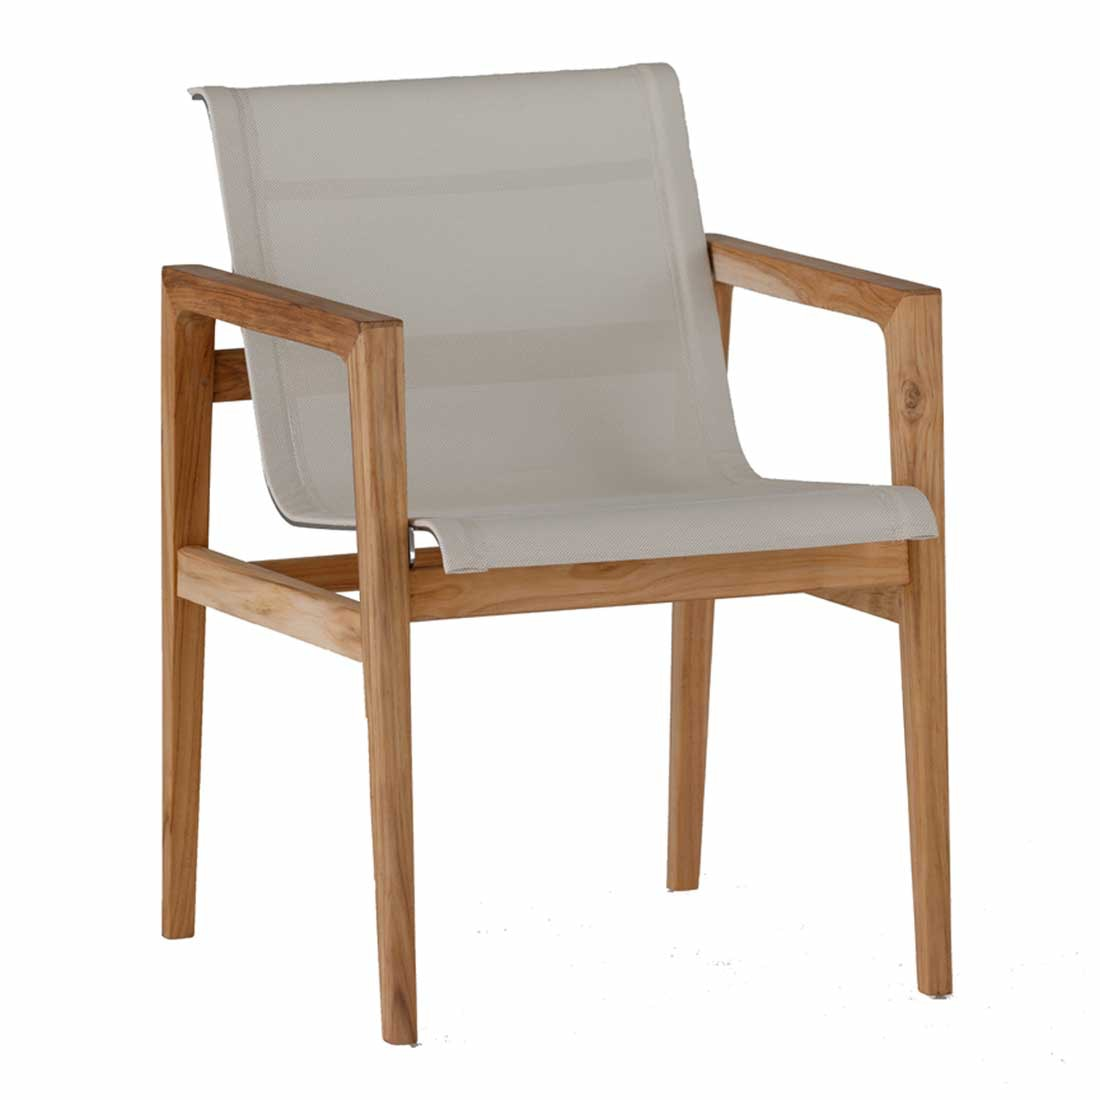 Summer Classics Outdoor/Patio Coast Arm Chair 27304 - Aaronu0026#39;s Fine Furniture - Altamonte Springs, FL